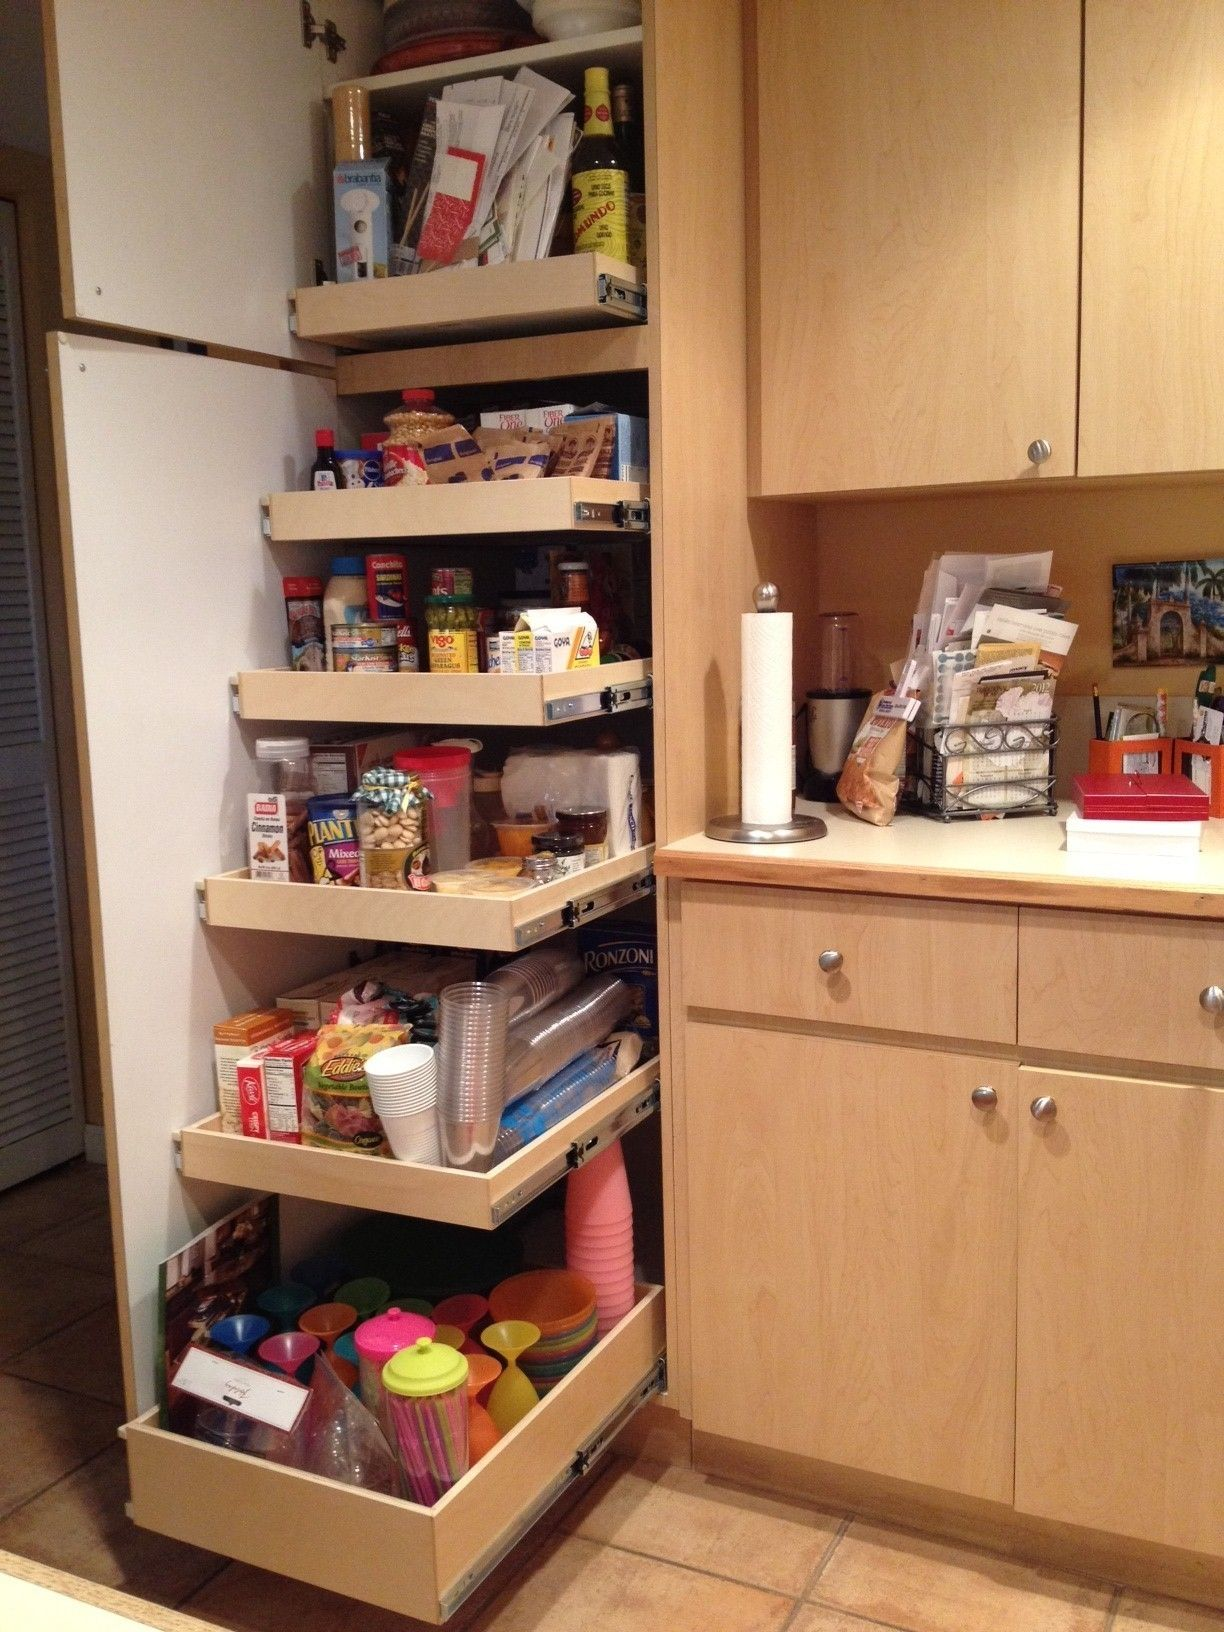 Storage Cabinets For Kitchen Pantry  Httpdivulgamaisweb Pleasing Kitchen Pantry Storage Cabinet Review